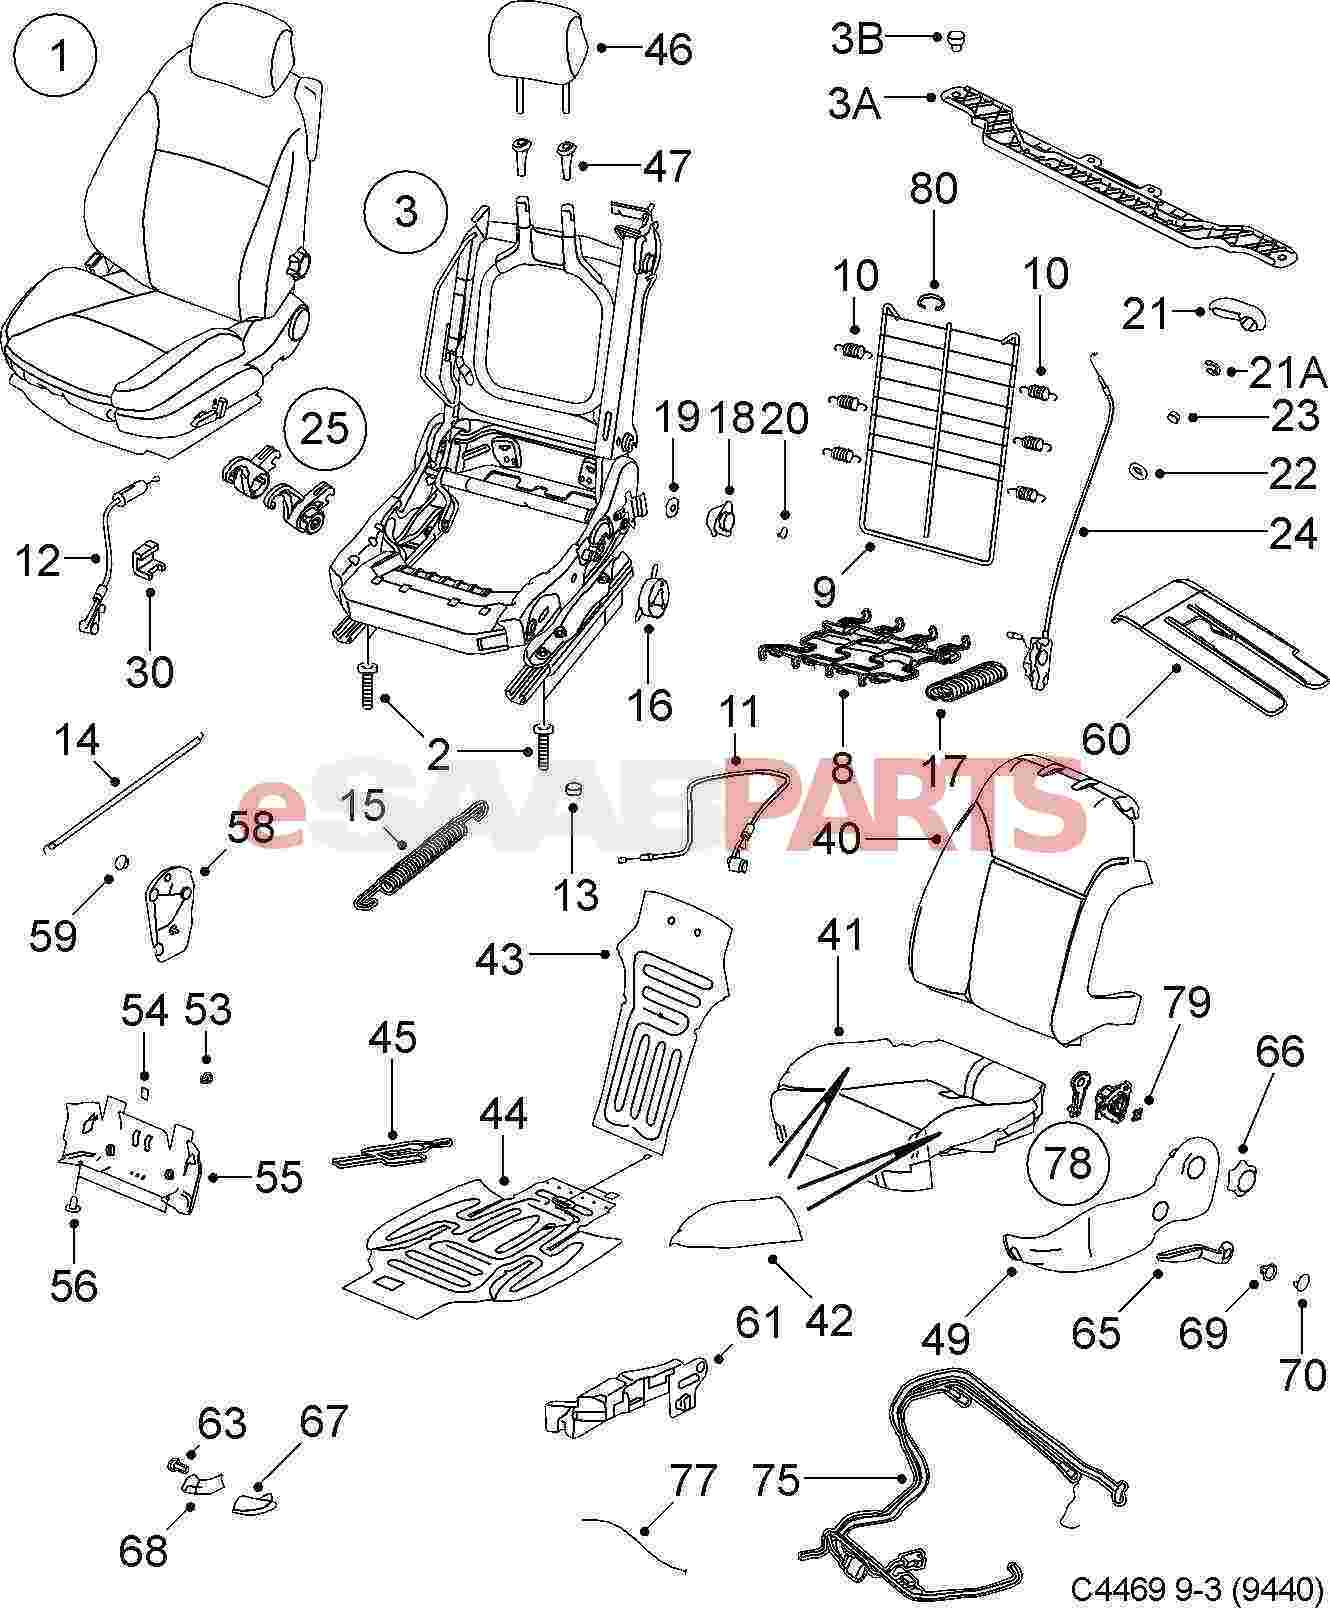 2001 9 5 Saab Engine Diagram 3 0 moreover 7 3 Fuel Filter Housing Removal furthermore 2002 Chevy Blazer Thermostat Location besides Mazda Cx 7 Engine Parts Diagram as well Ford Freestar Power Steering Diagram. on saab 9 3 engine leak